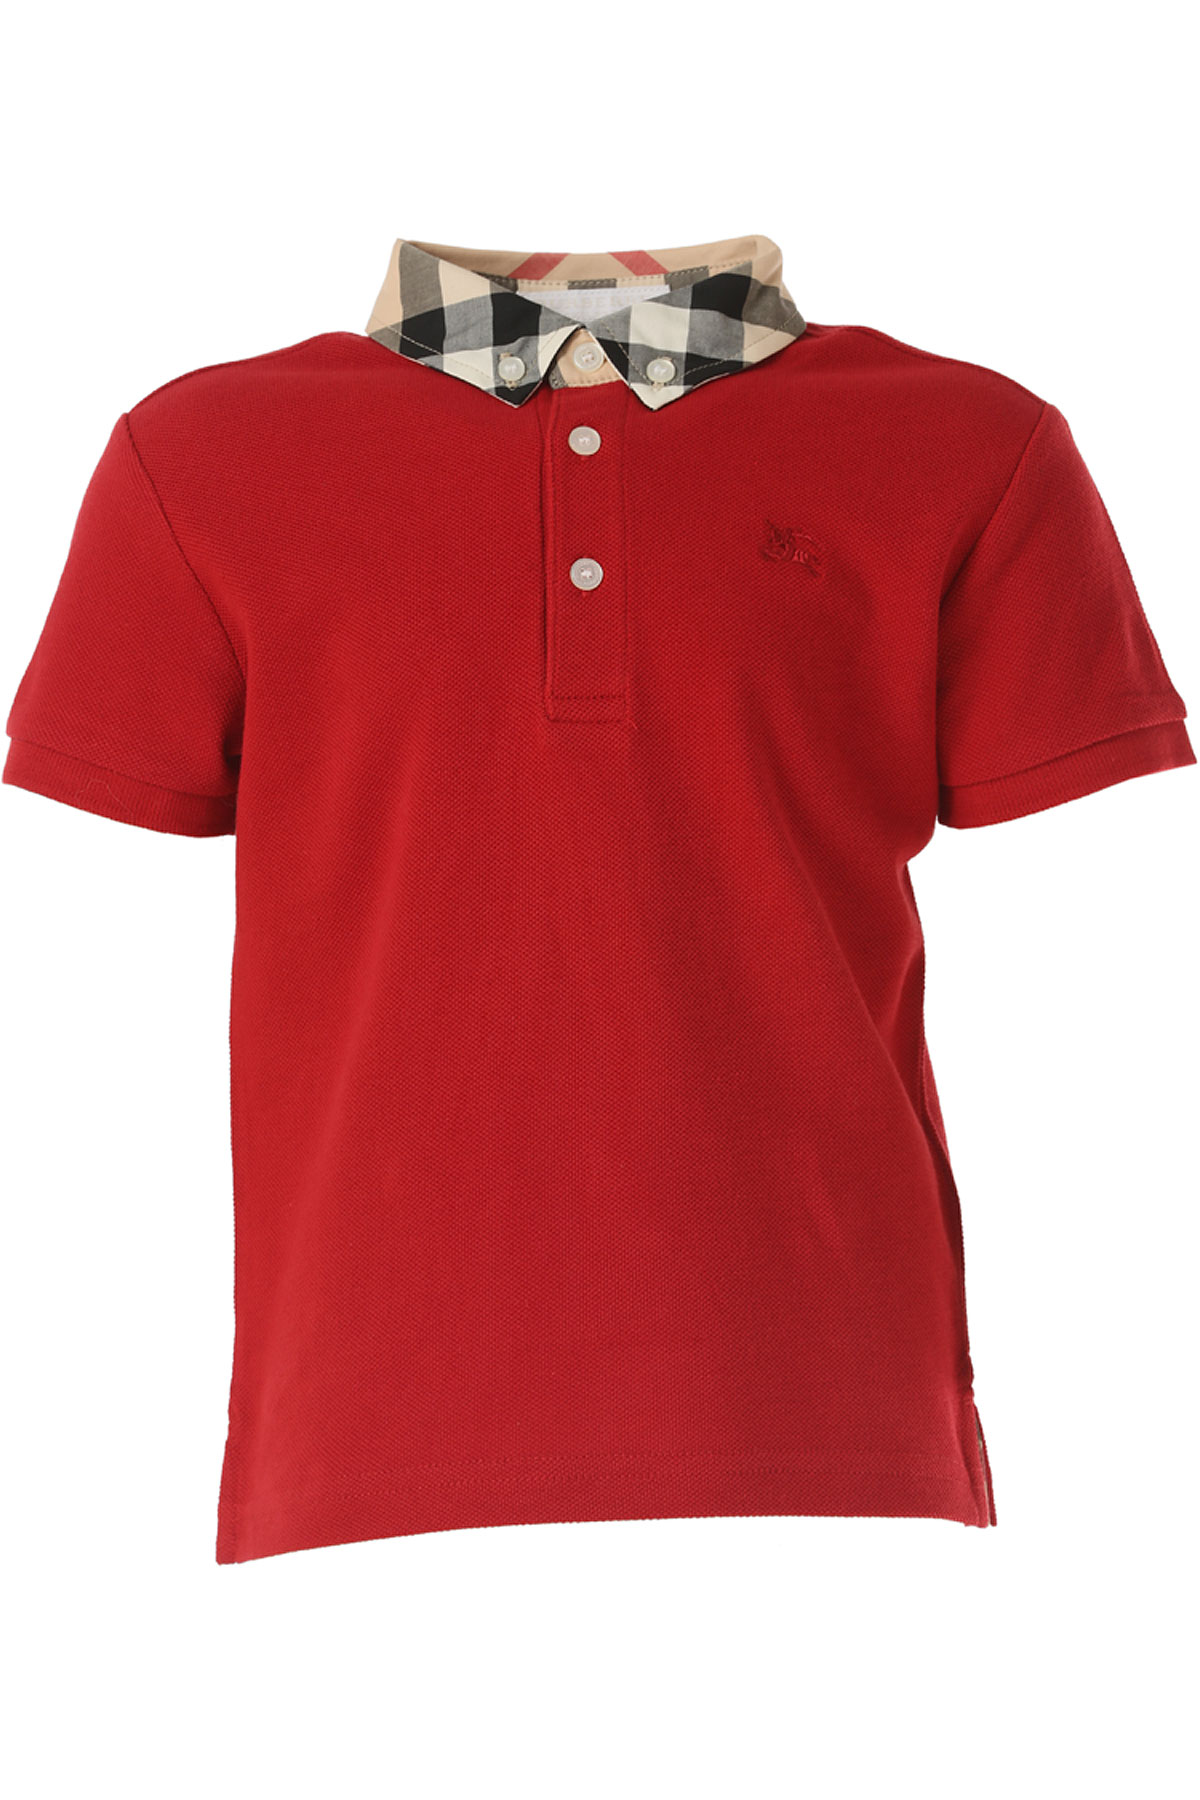 Image of Burberry Kids Polo Shirt for Boys, Red, Cotton, 2017, 10Y 4Y 6Y 8Y